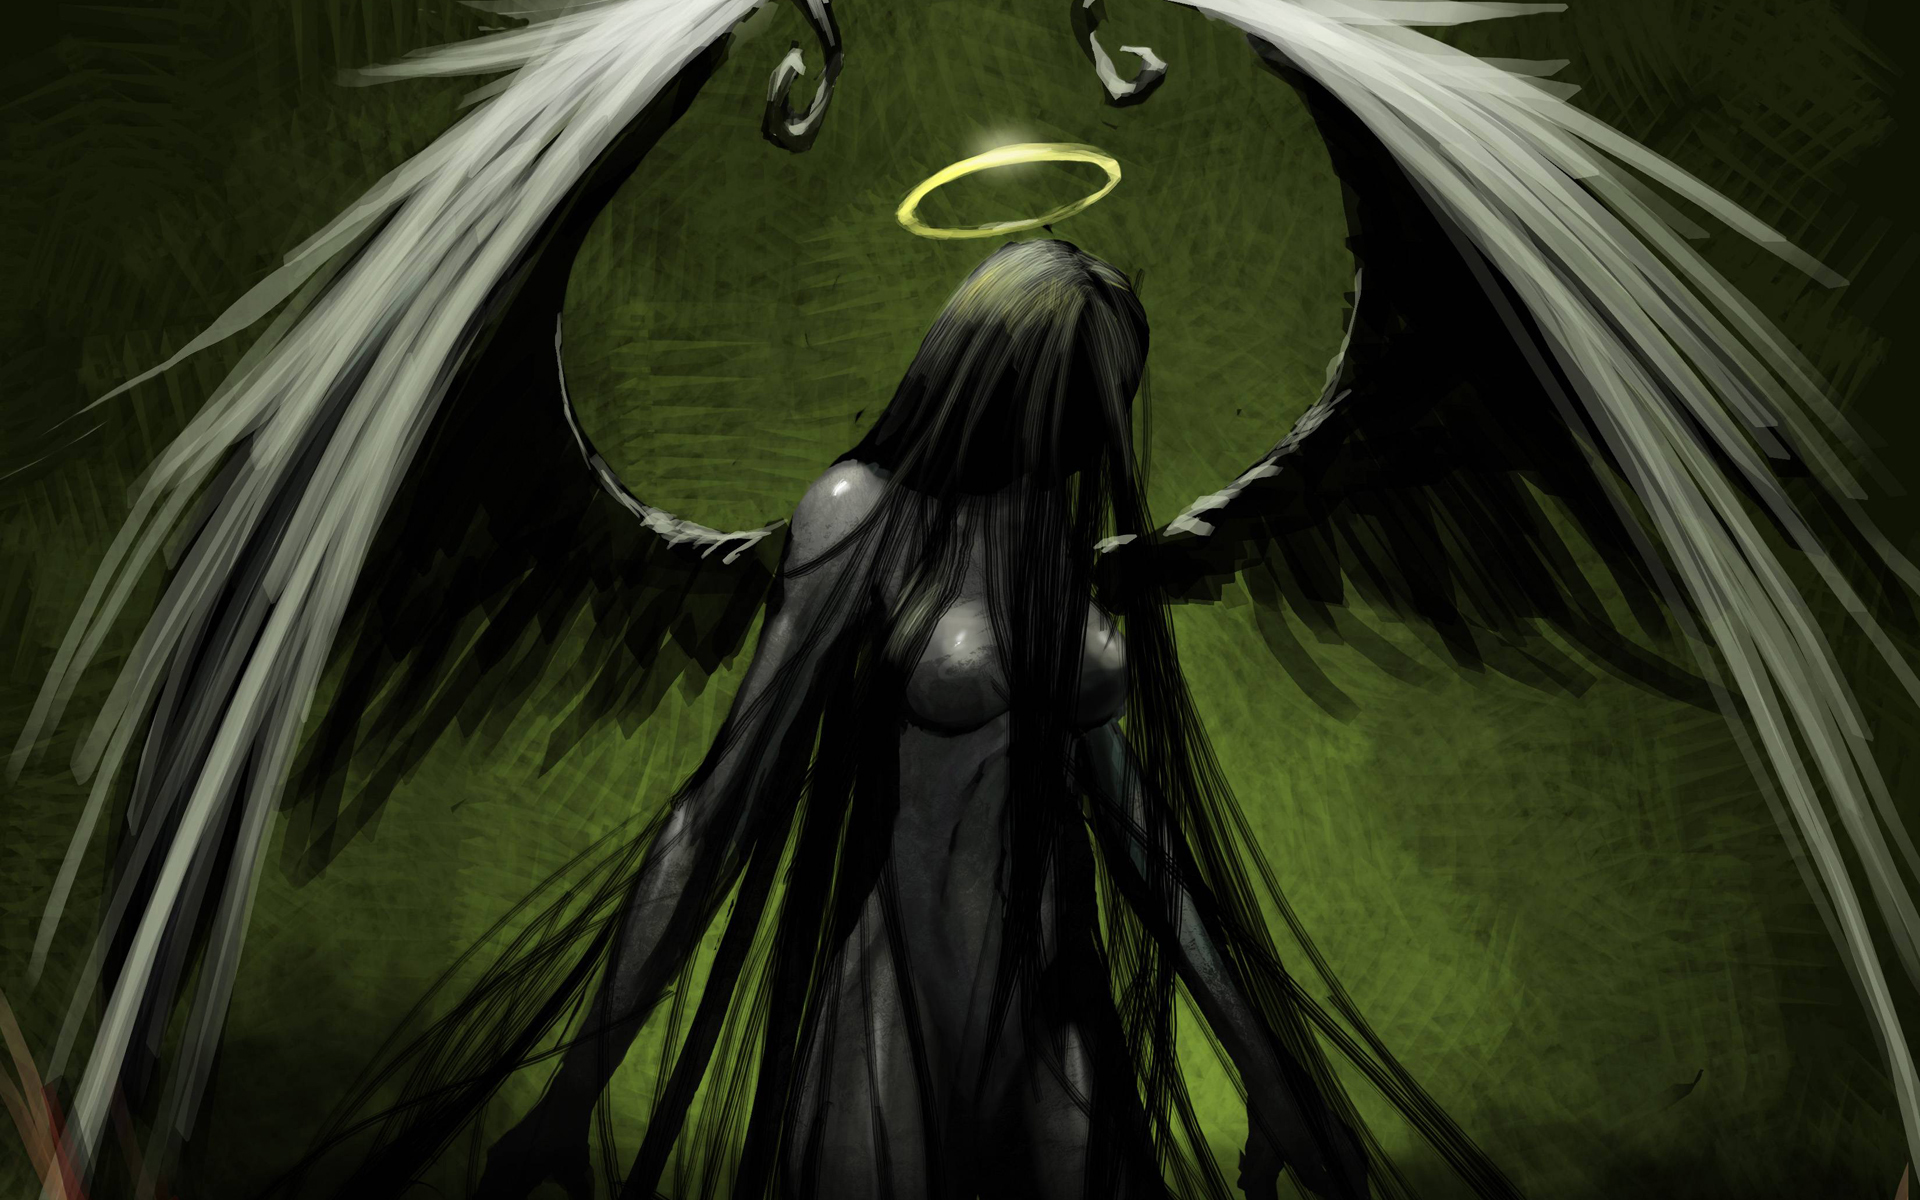 angel green drawing halo wings gothic dark wallpaper 1920x1200